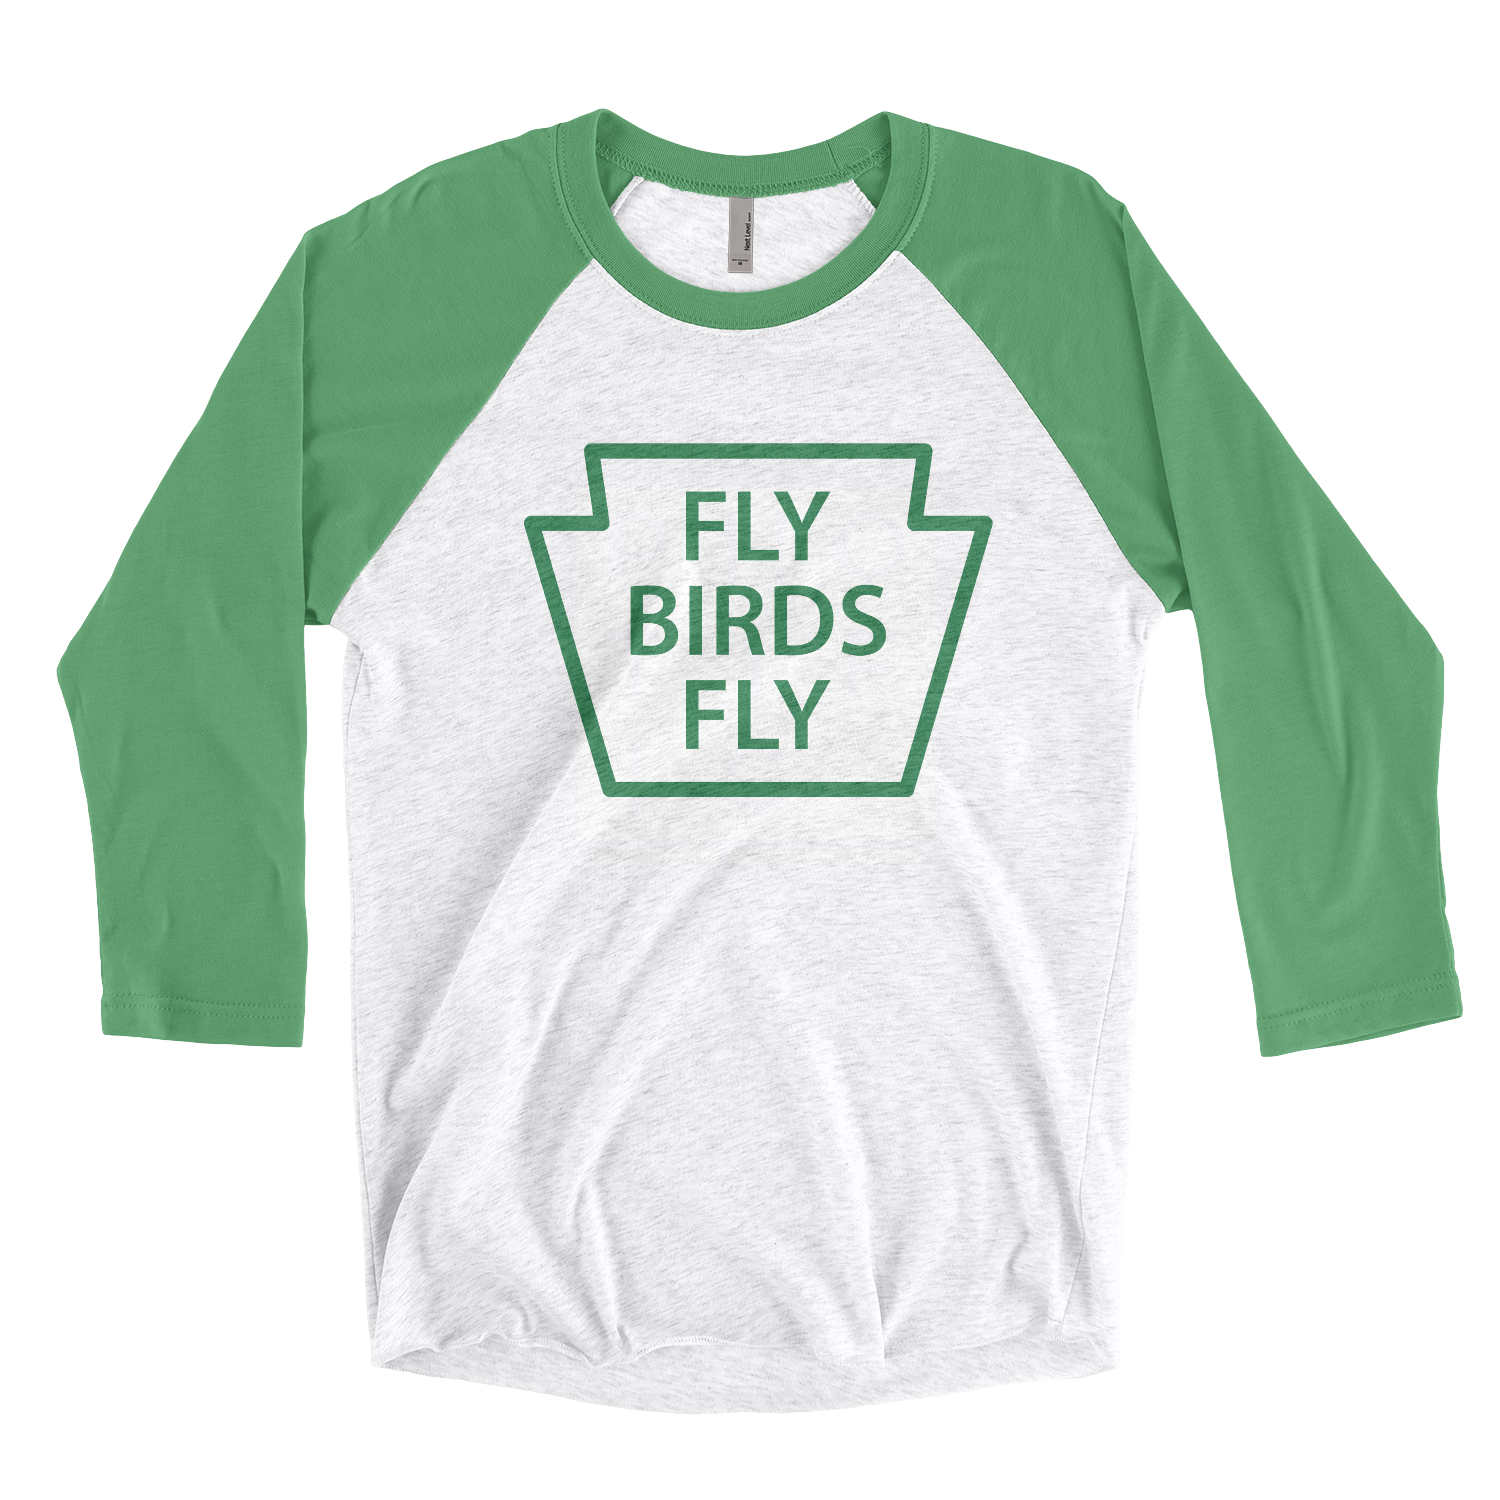 Fly Birds Fly Tri-Blend 3/4 Sleeve Baseball Raglan T-Shirt